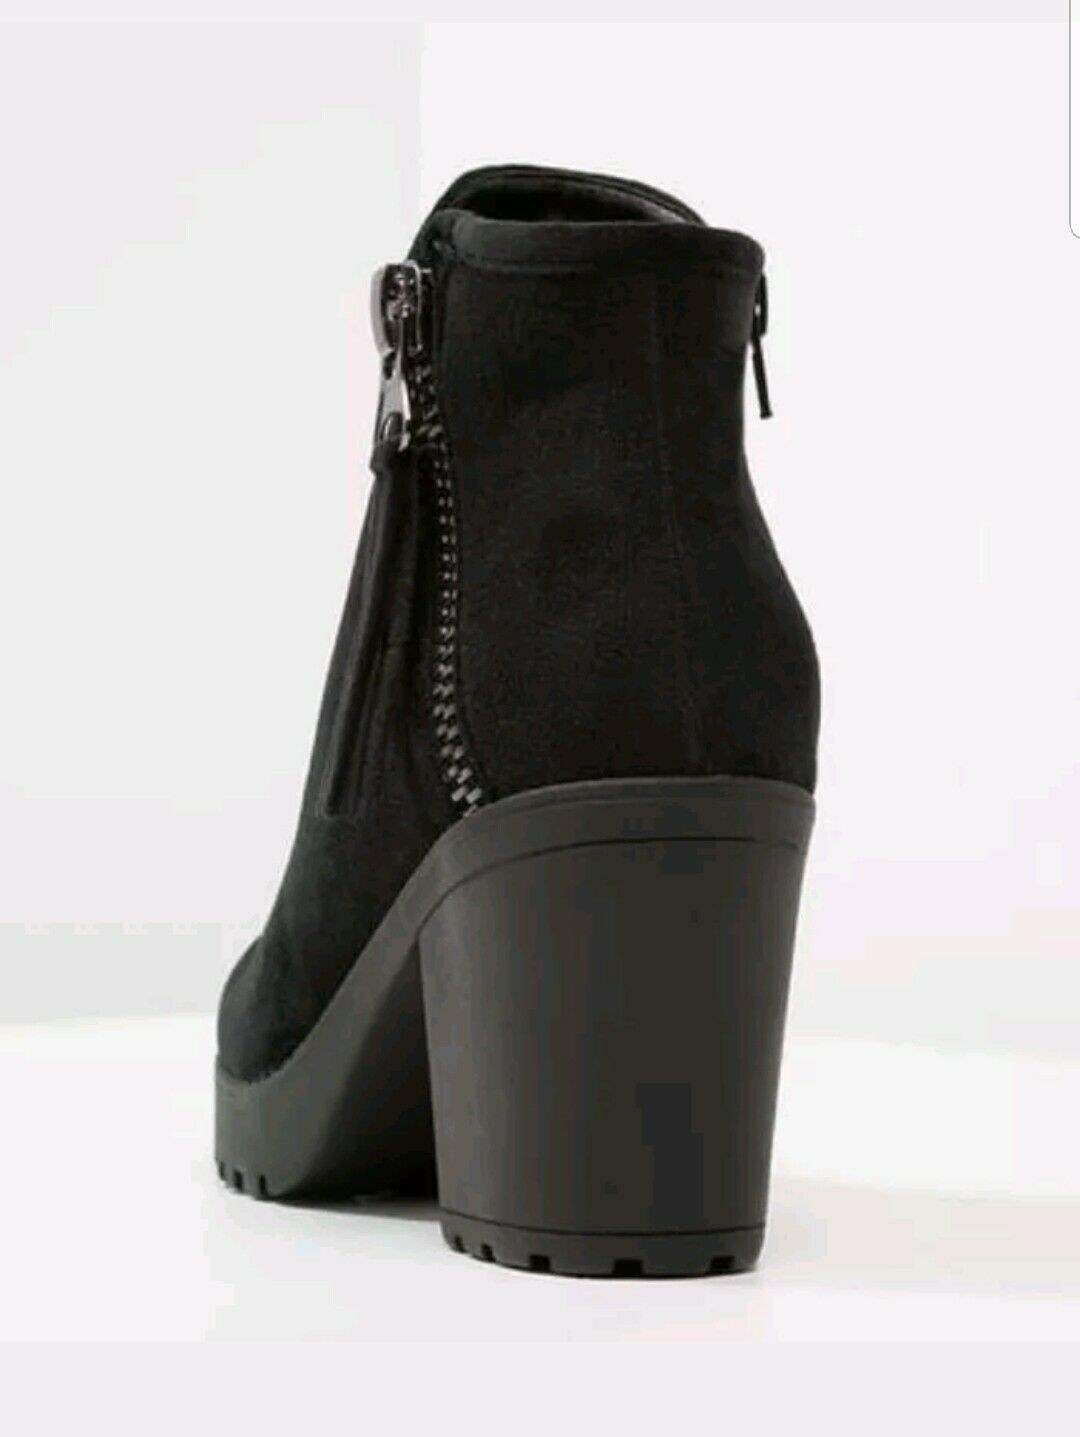 BRS CALL CALL CALL IT SPRING JOLLES BLACK LADIES BOOTS SIZE UK 6 39 d2e0b4